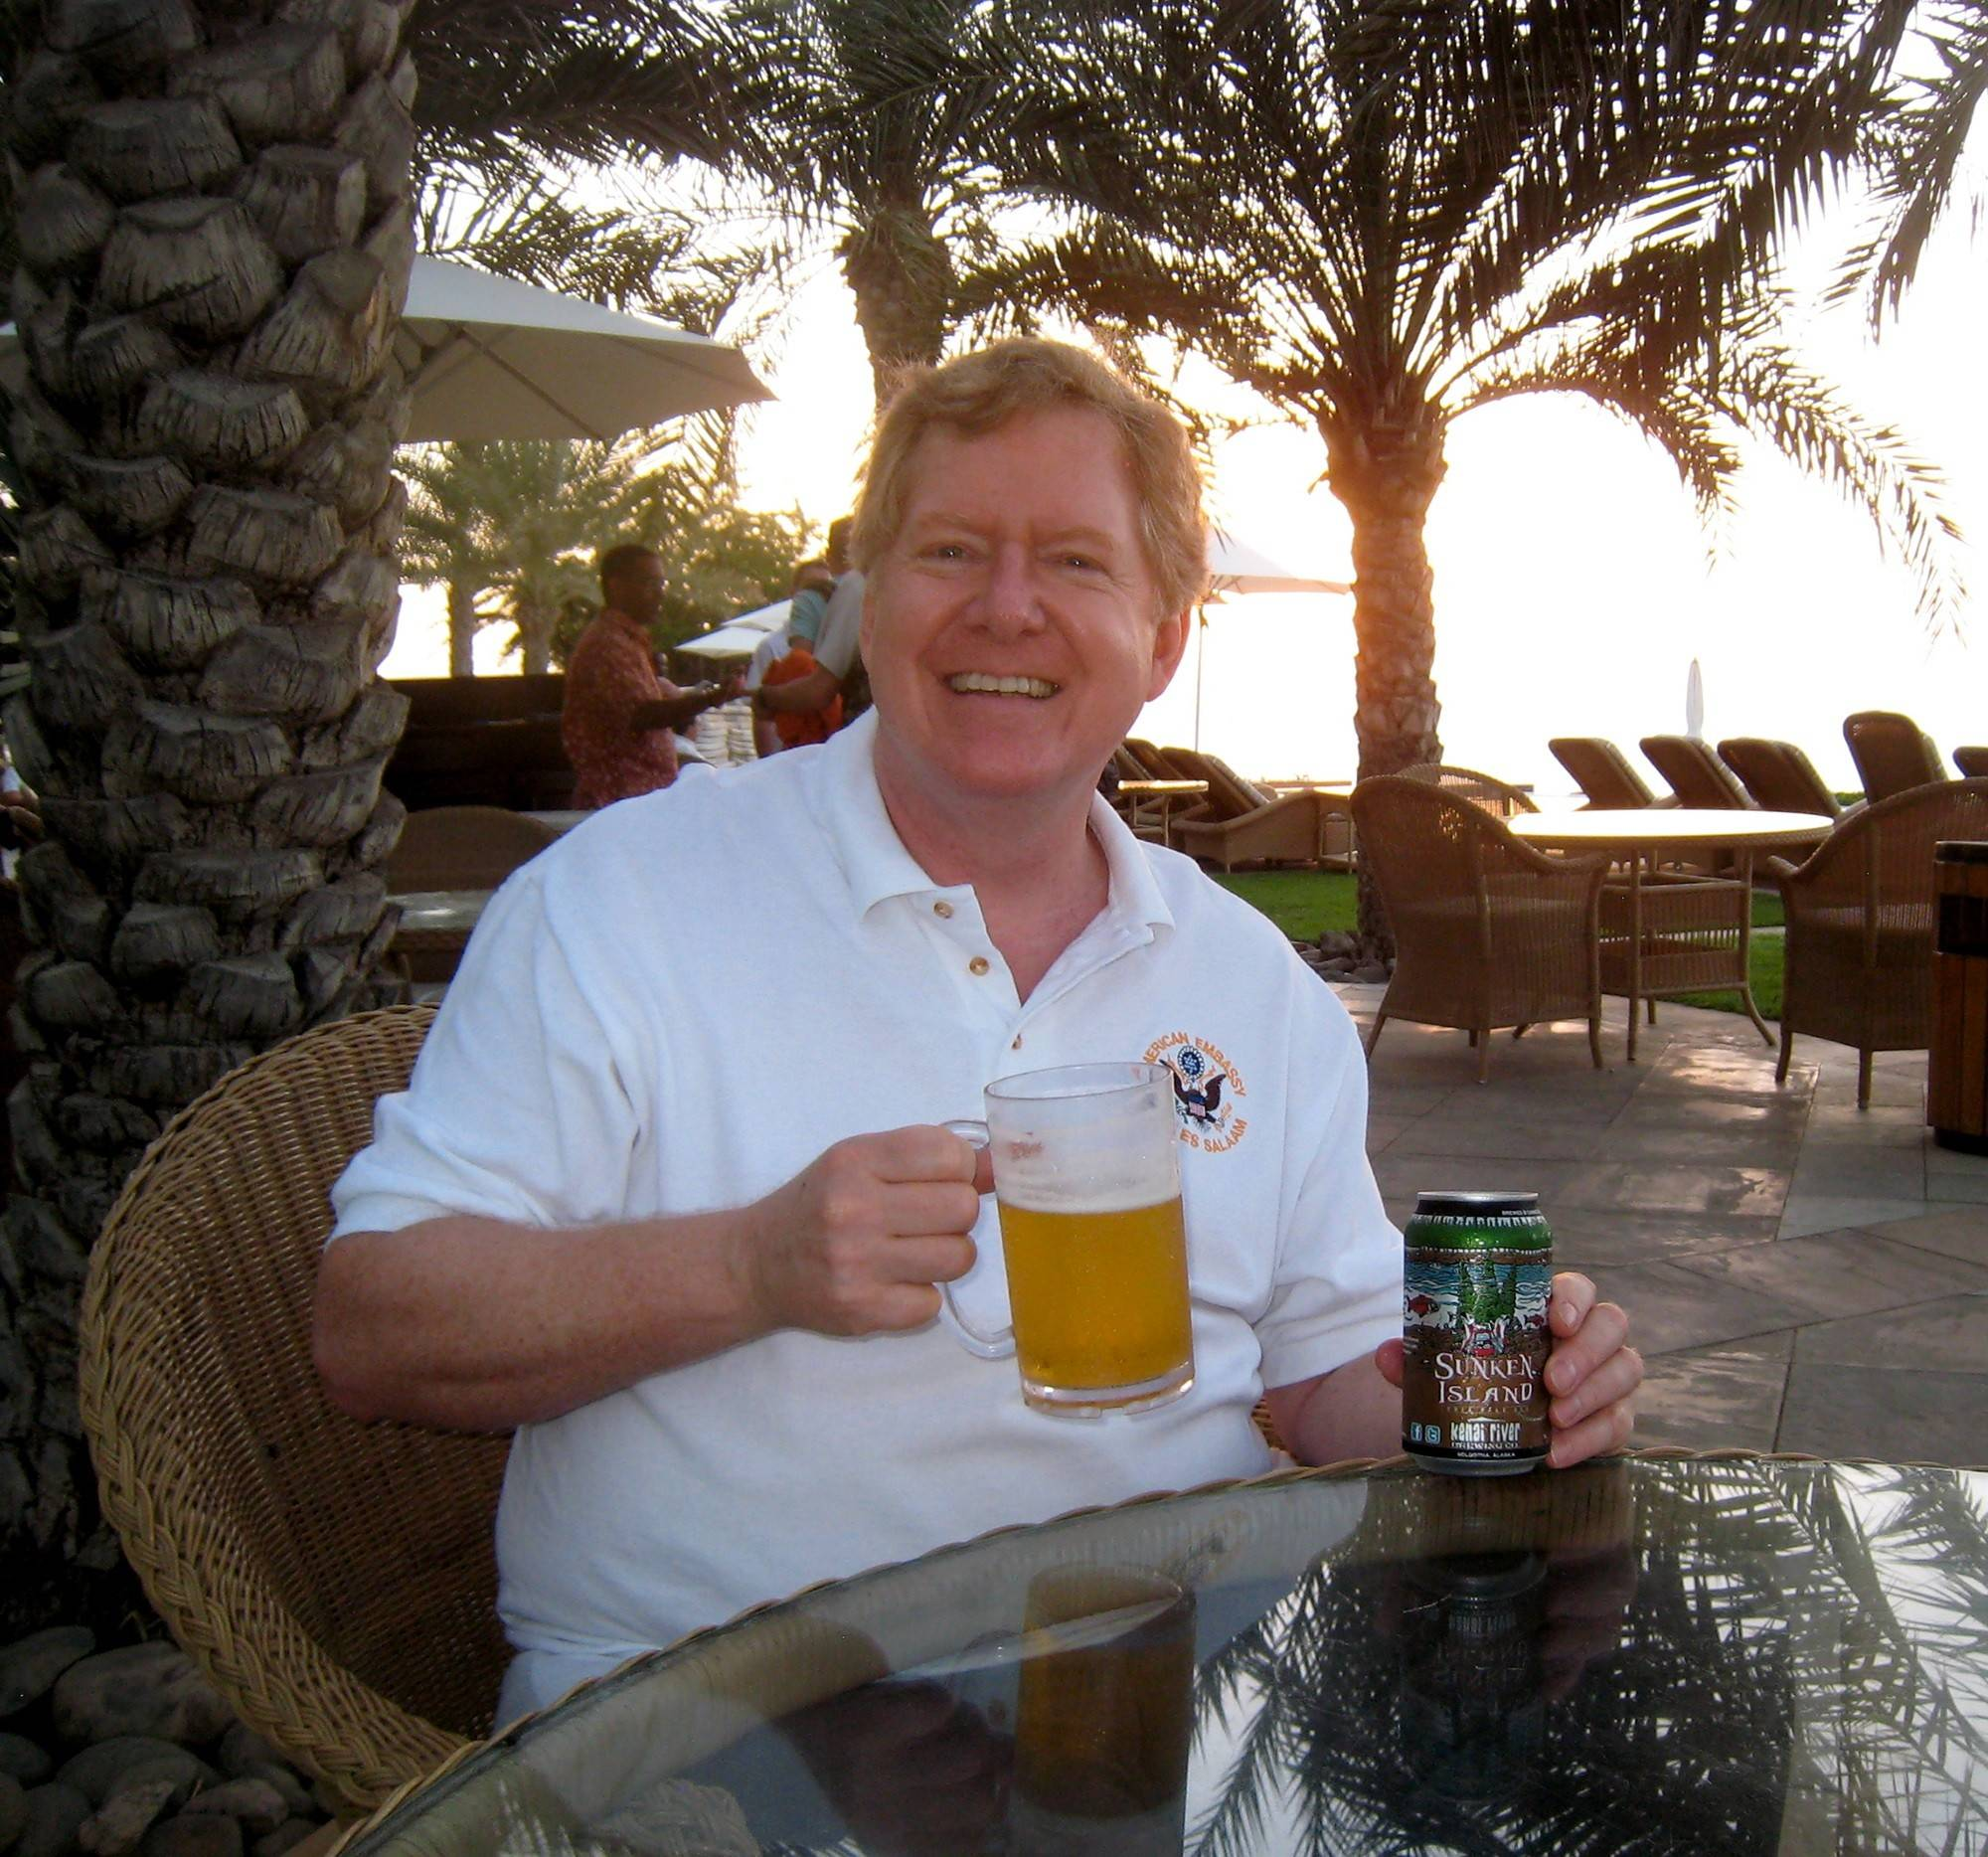 Gene Bonventre hosts a tasting in Djibouti in East Africa. He has sampled beers all around the world and has made about a dozen weekend beer trips to far-flung destinations in the past few years.